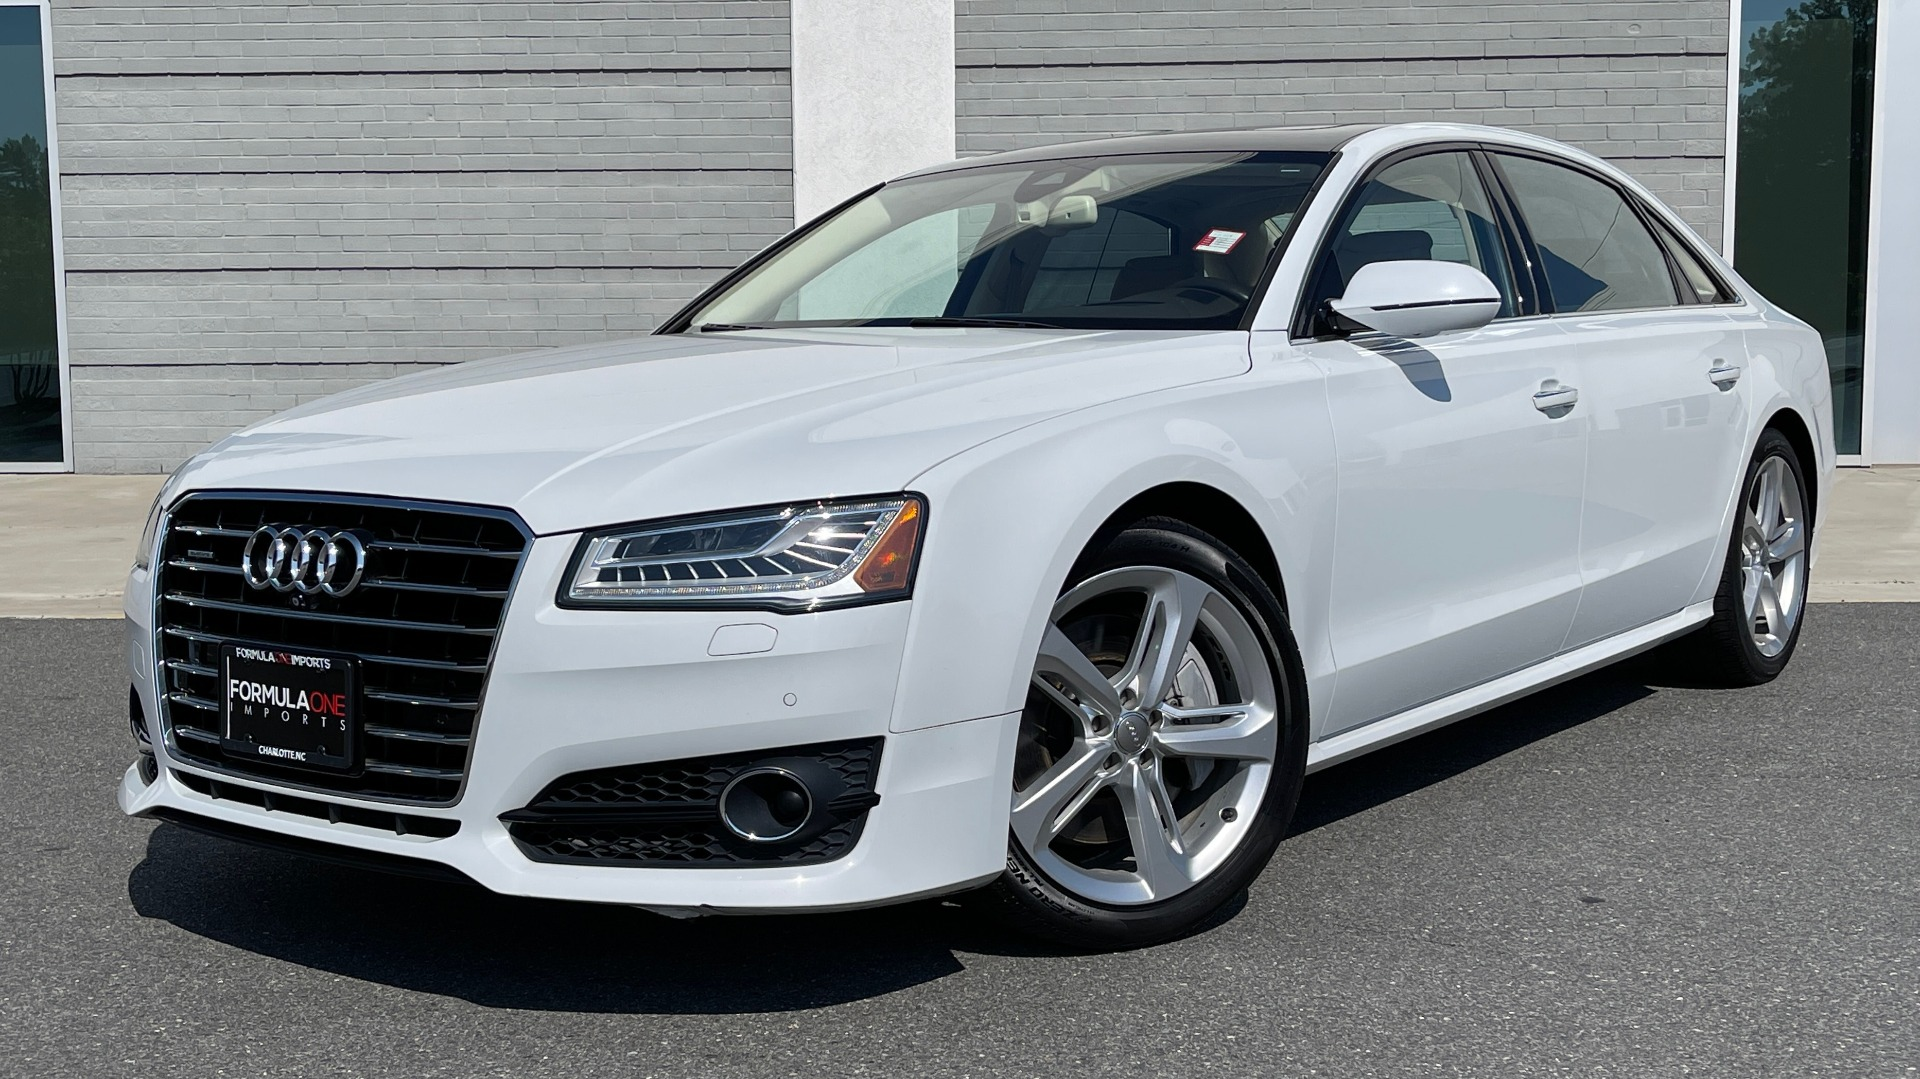 Used 2018 Audi A8 L SPORT 4.0T / EXECUTIVE PKG / NAV / BOSE / SUNROOF / REARVIEW for sale Sold at Formula Imports in Charlotte NC 28227 1